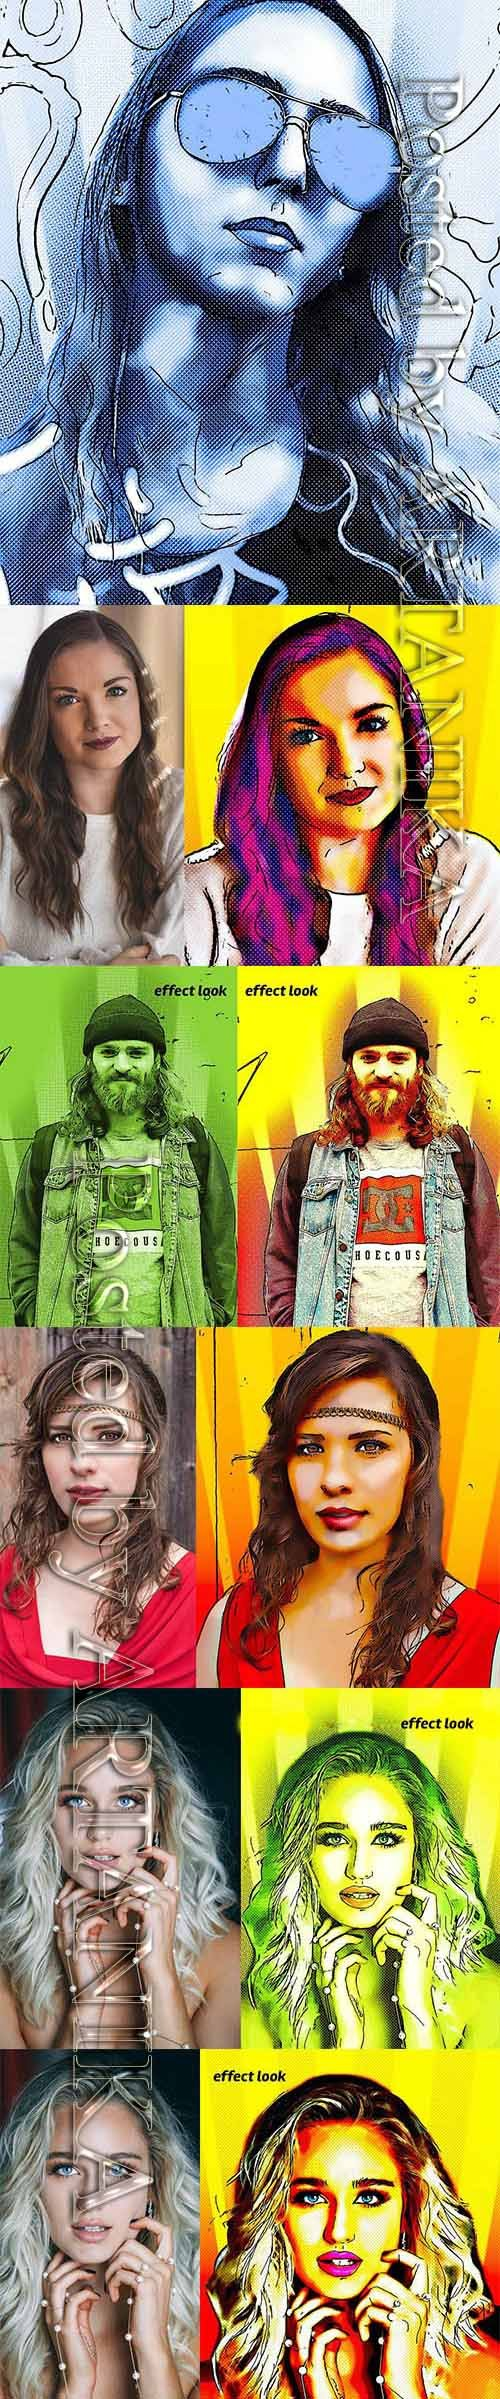 Comic Book Effect Photoshop Action 3501813